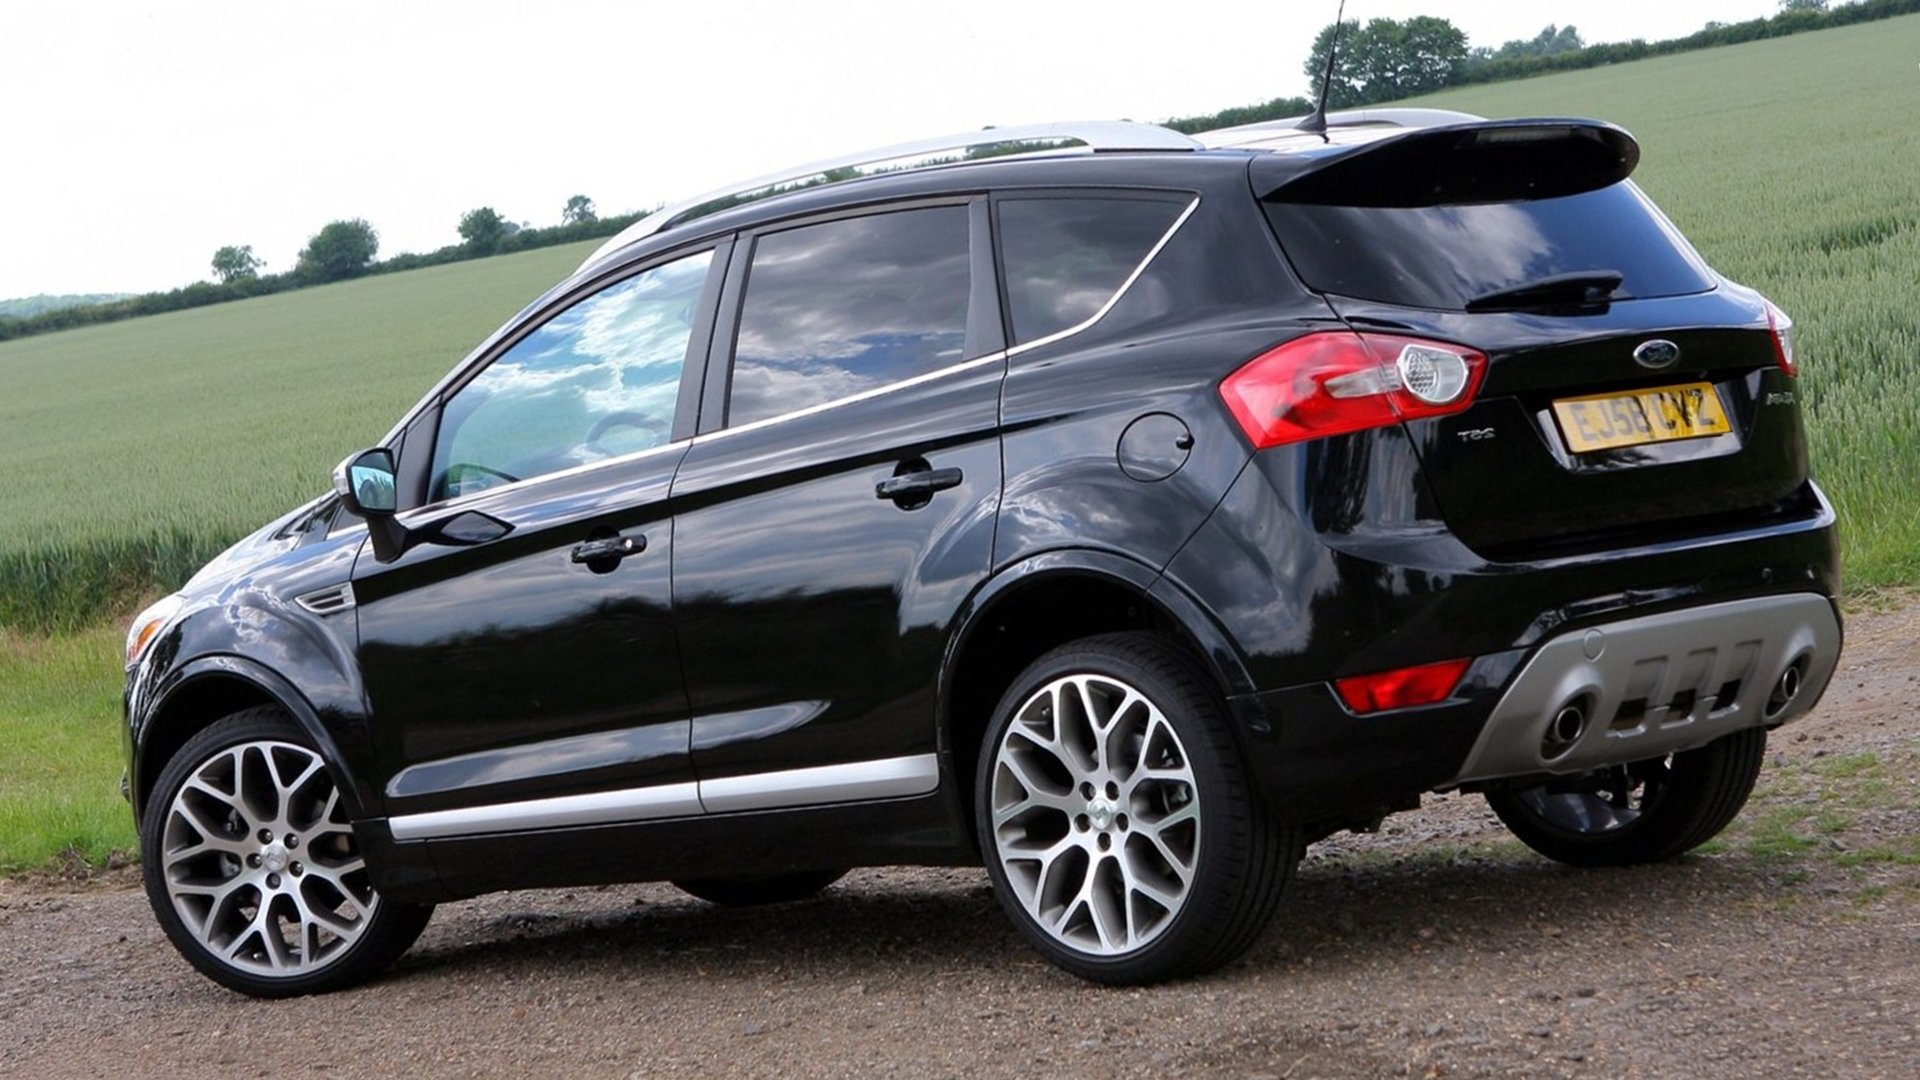 Back View Ford Kuga HD